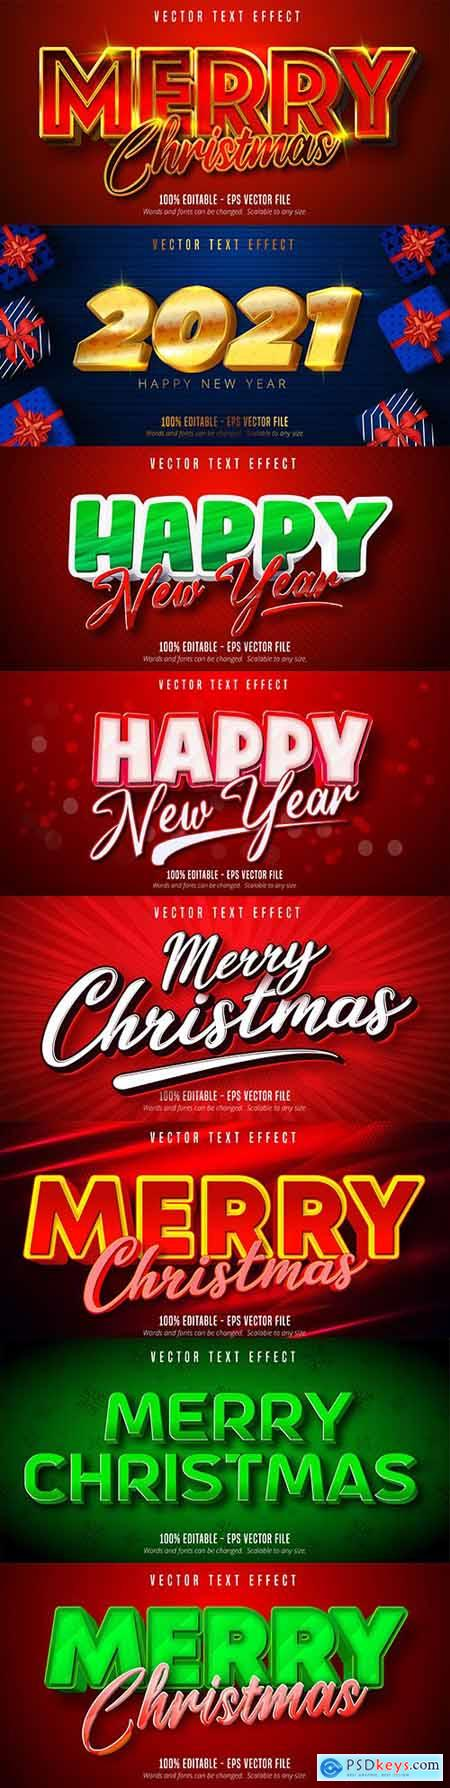 Merry Christmas editable font effect text collection illustration design